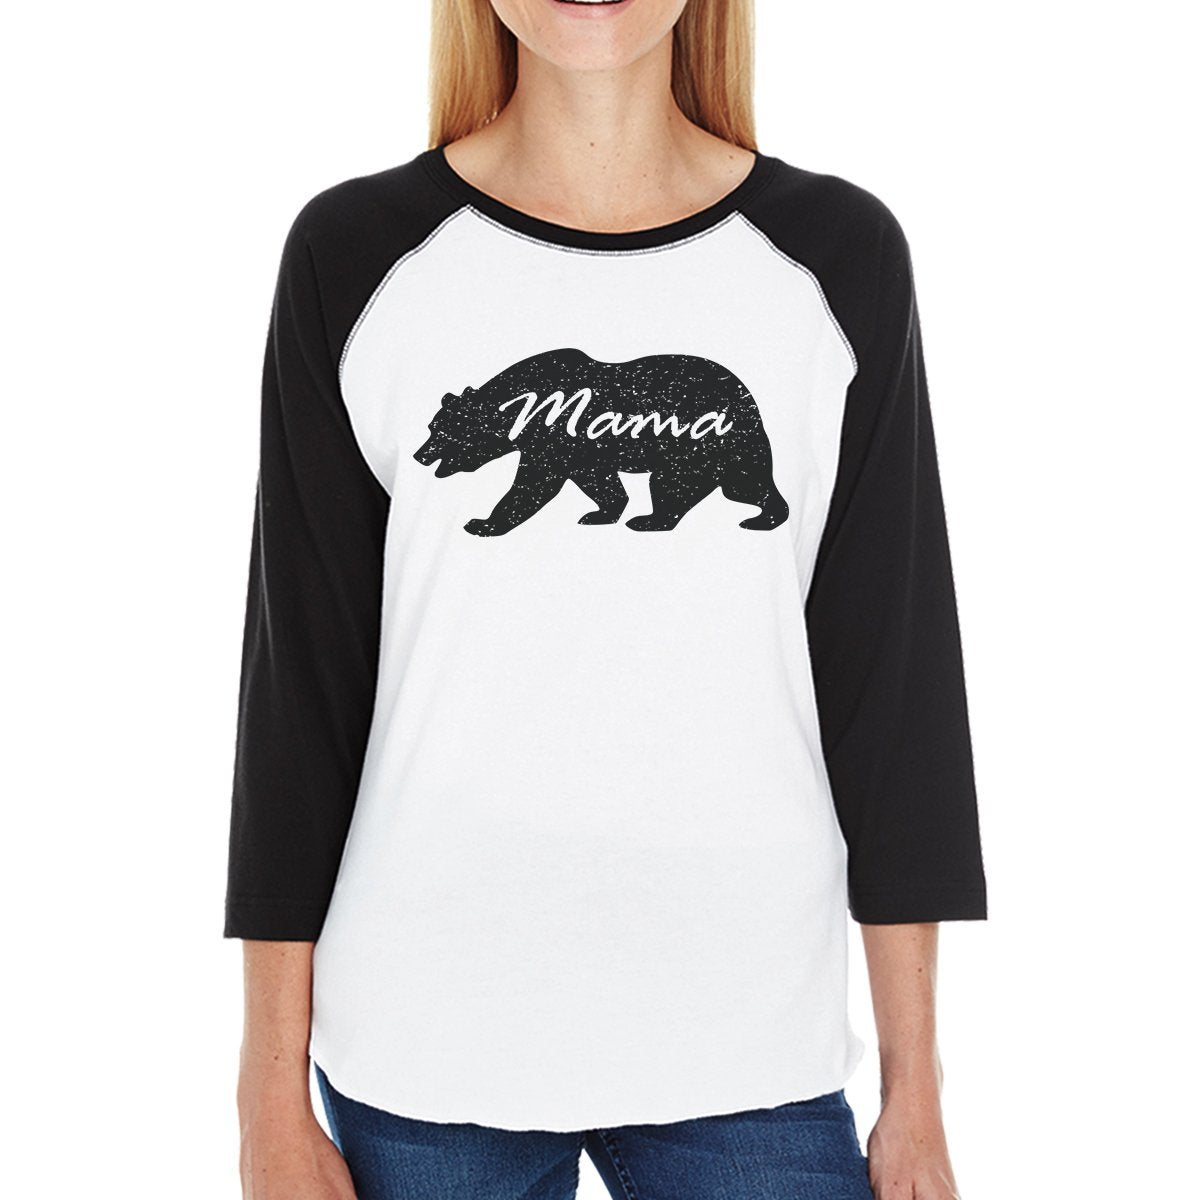 Papa Mama Baby Bears Womens Black And White Baseball Shirt